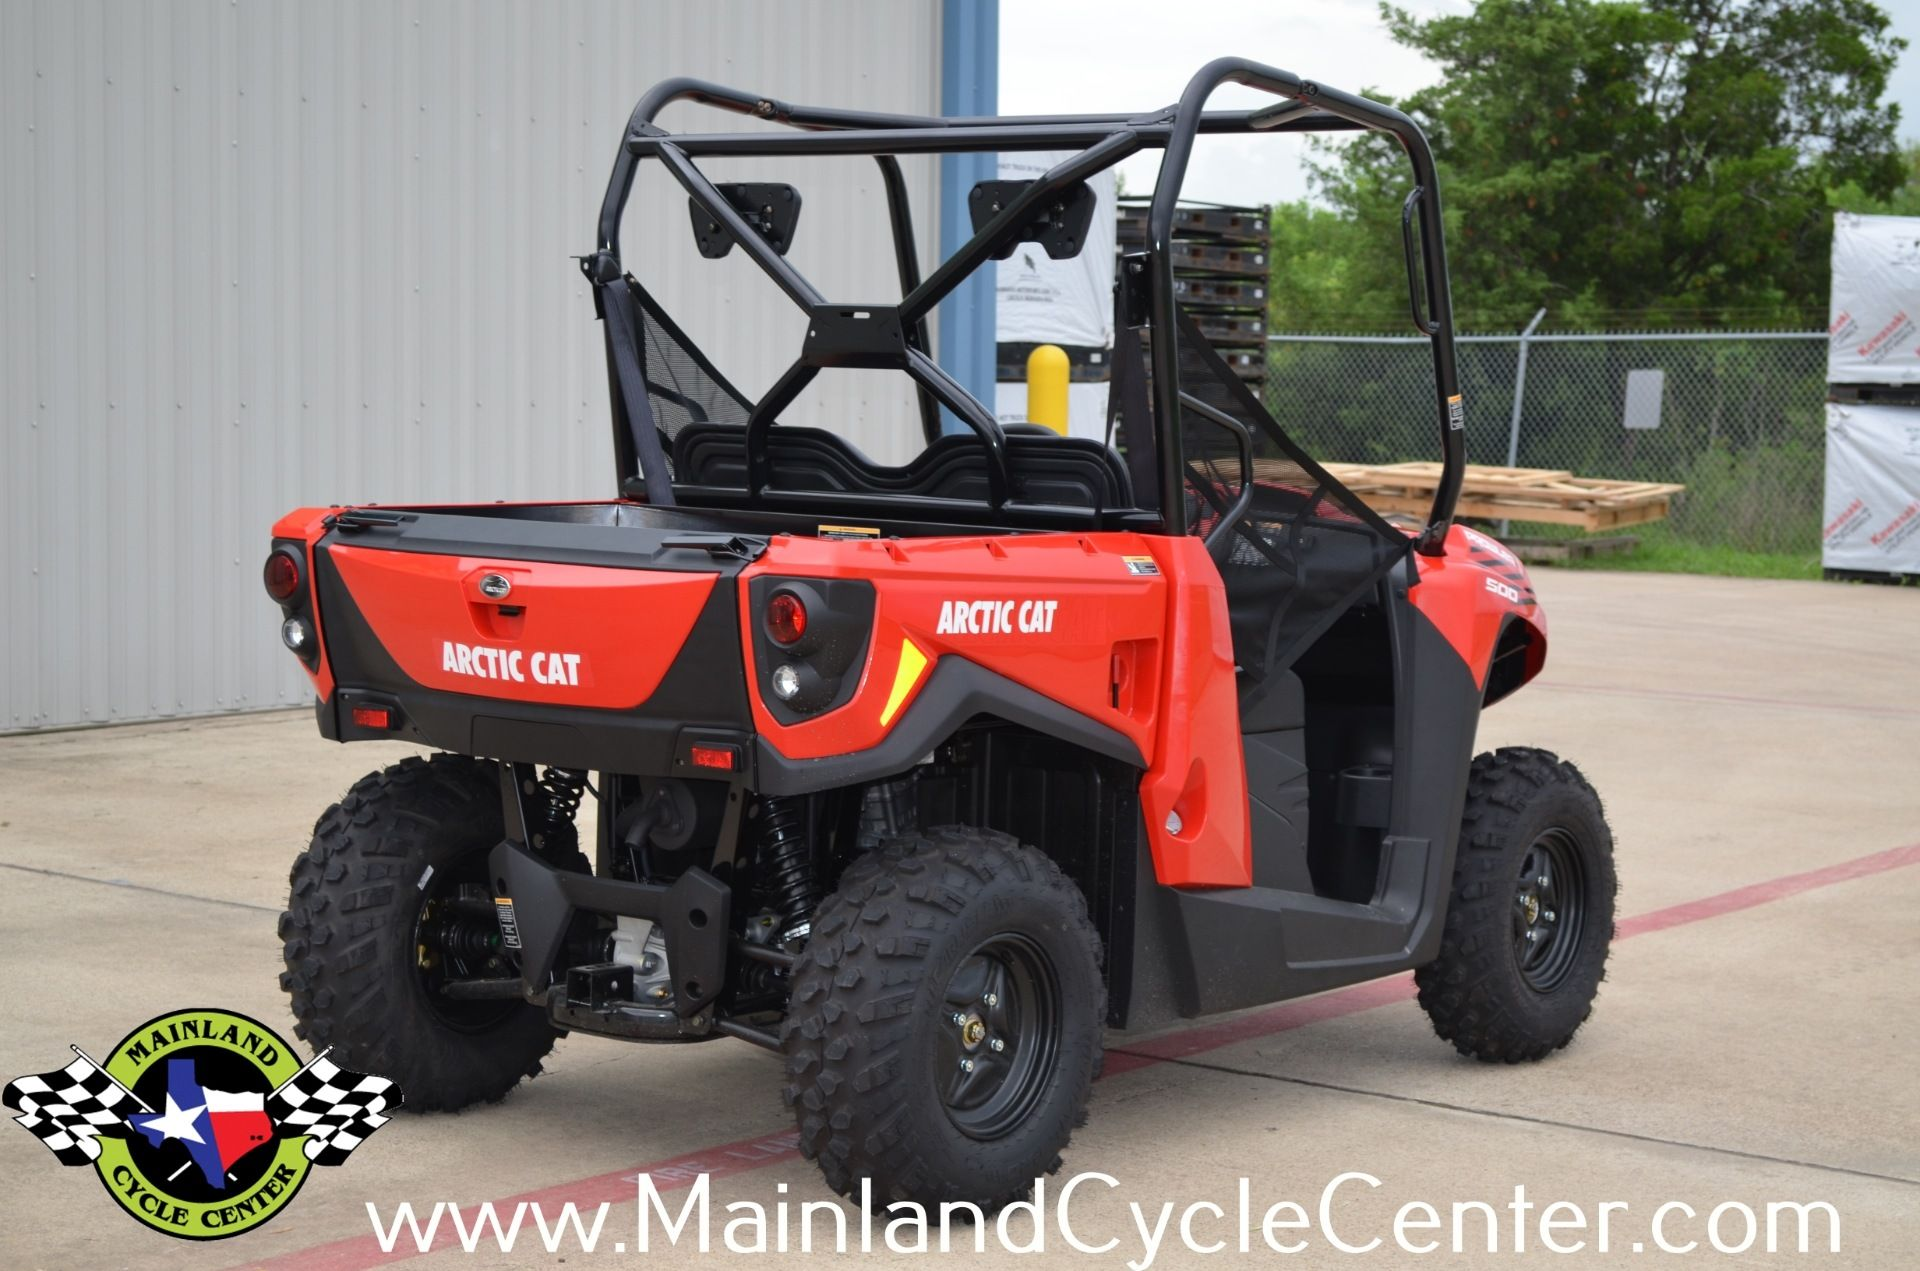 2017 Arctic Cat Prowler 500 Wiring Diagram Download Portable For A Kindle Filesize 2185mb